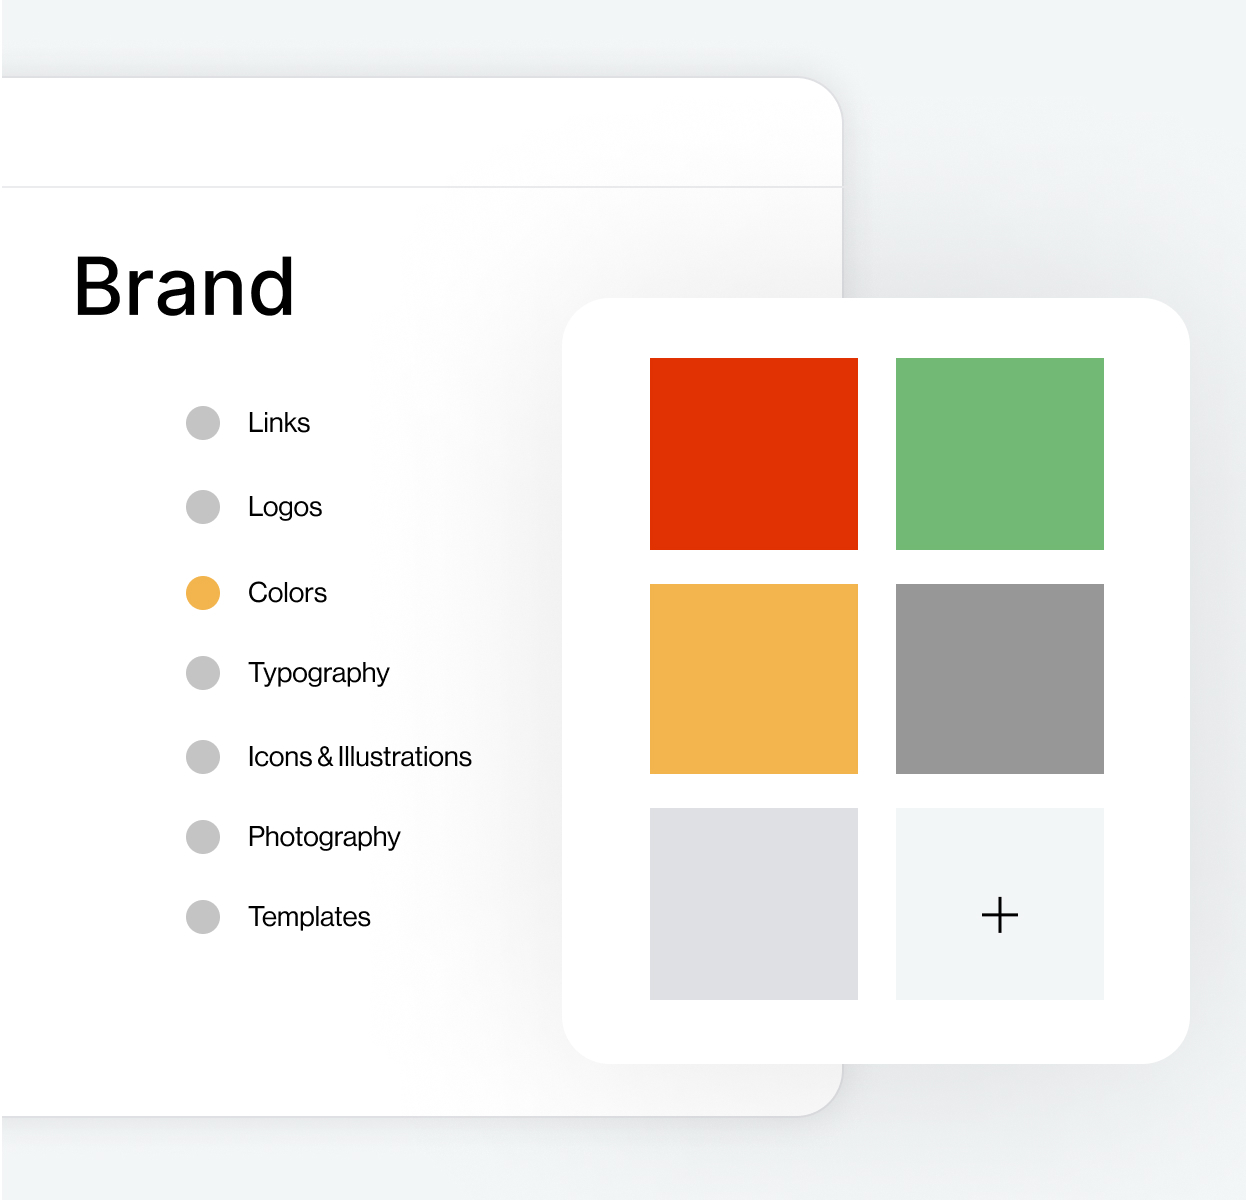 agencyMAX brand design and brand strategy management tool